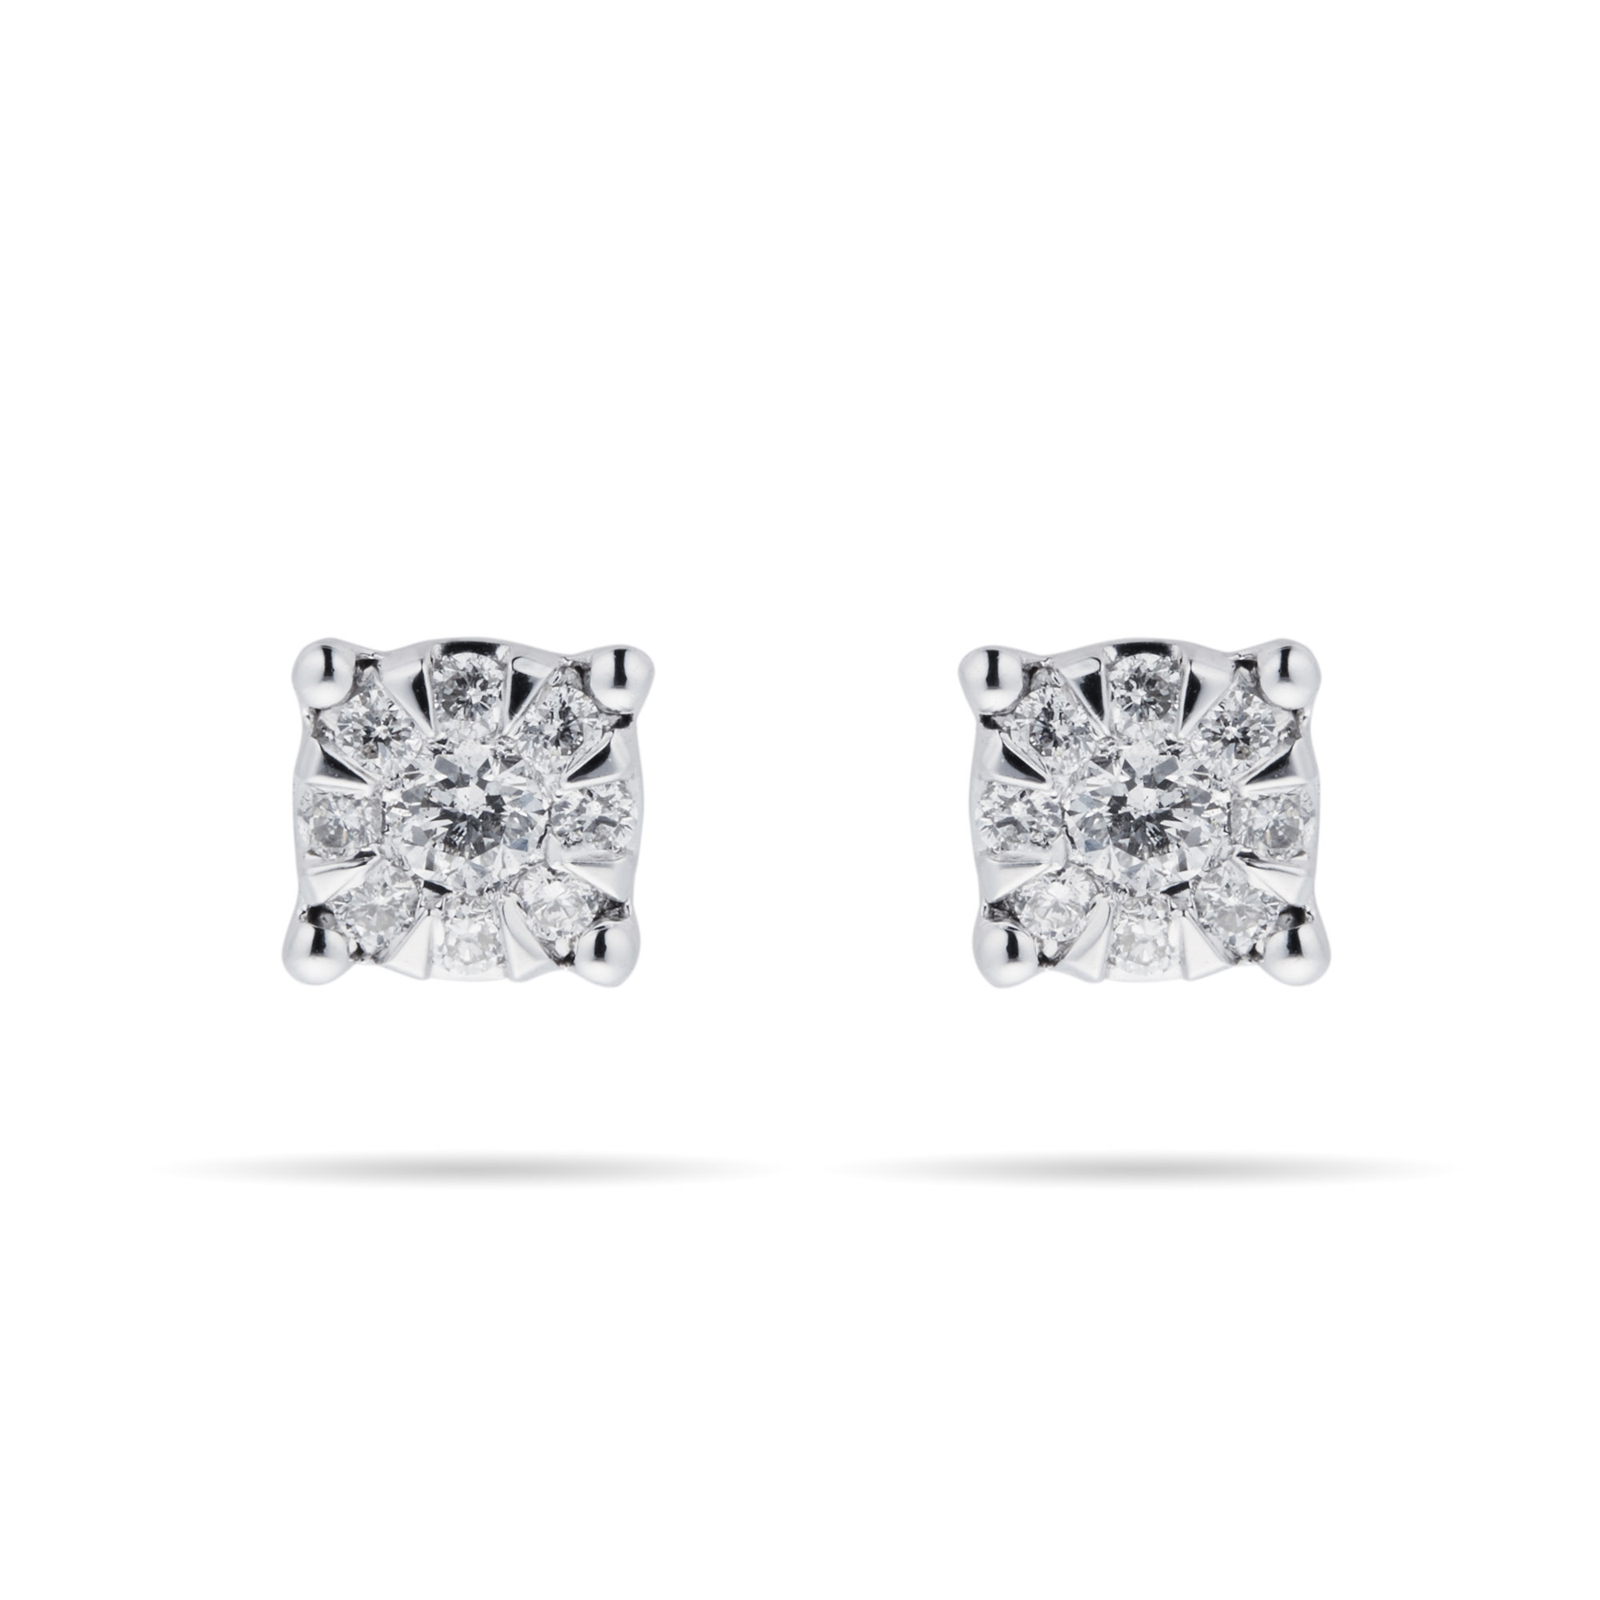 9ct White Gold 0.15 Carat Total Weight Diamond Multi Stone Stud Earrings